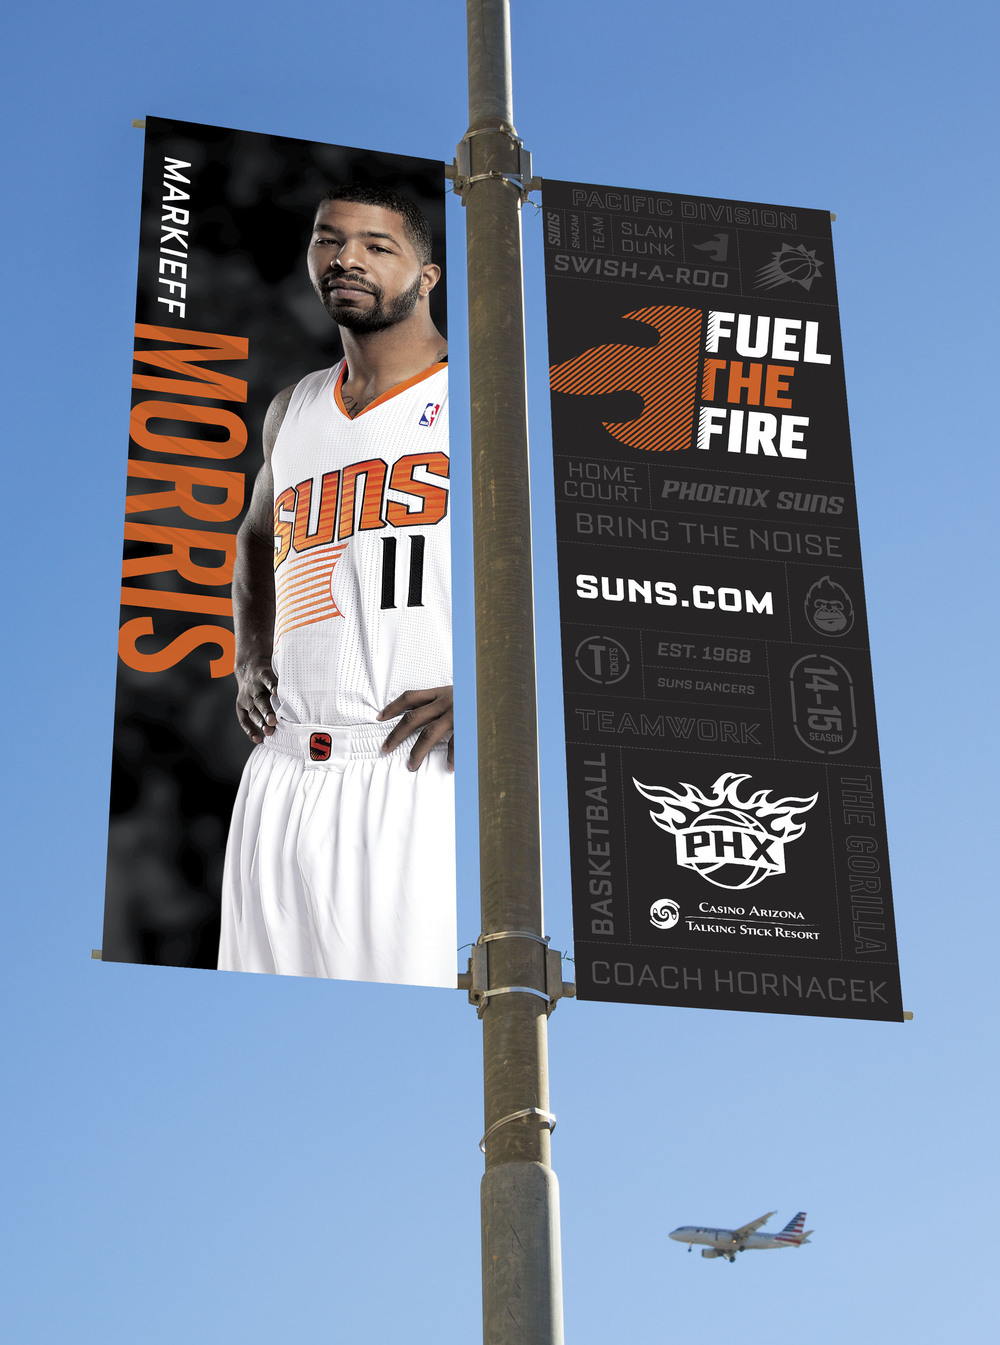 Phoenix Suns Downtown Flag Banners Art Direction: Katie Blaker, Hugh Mulligan Creative Direction: GG LeMere, Greg Fisher, Jason Smith